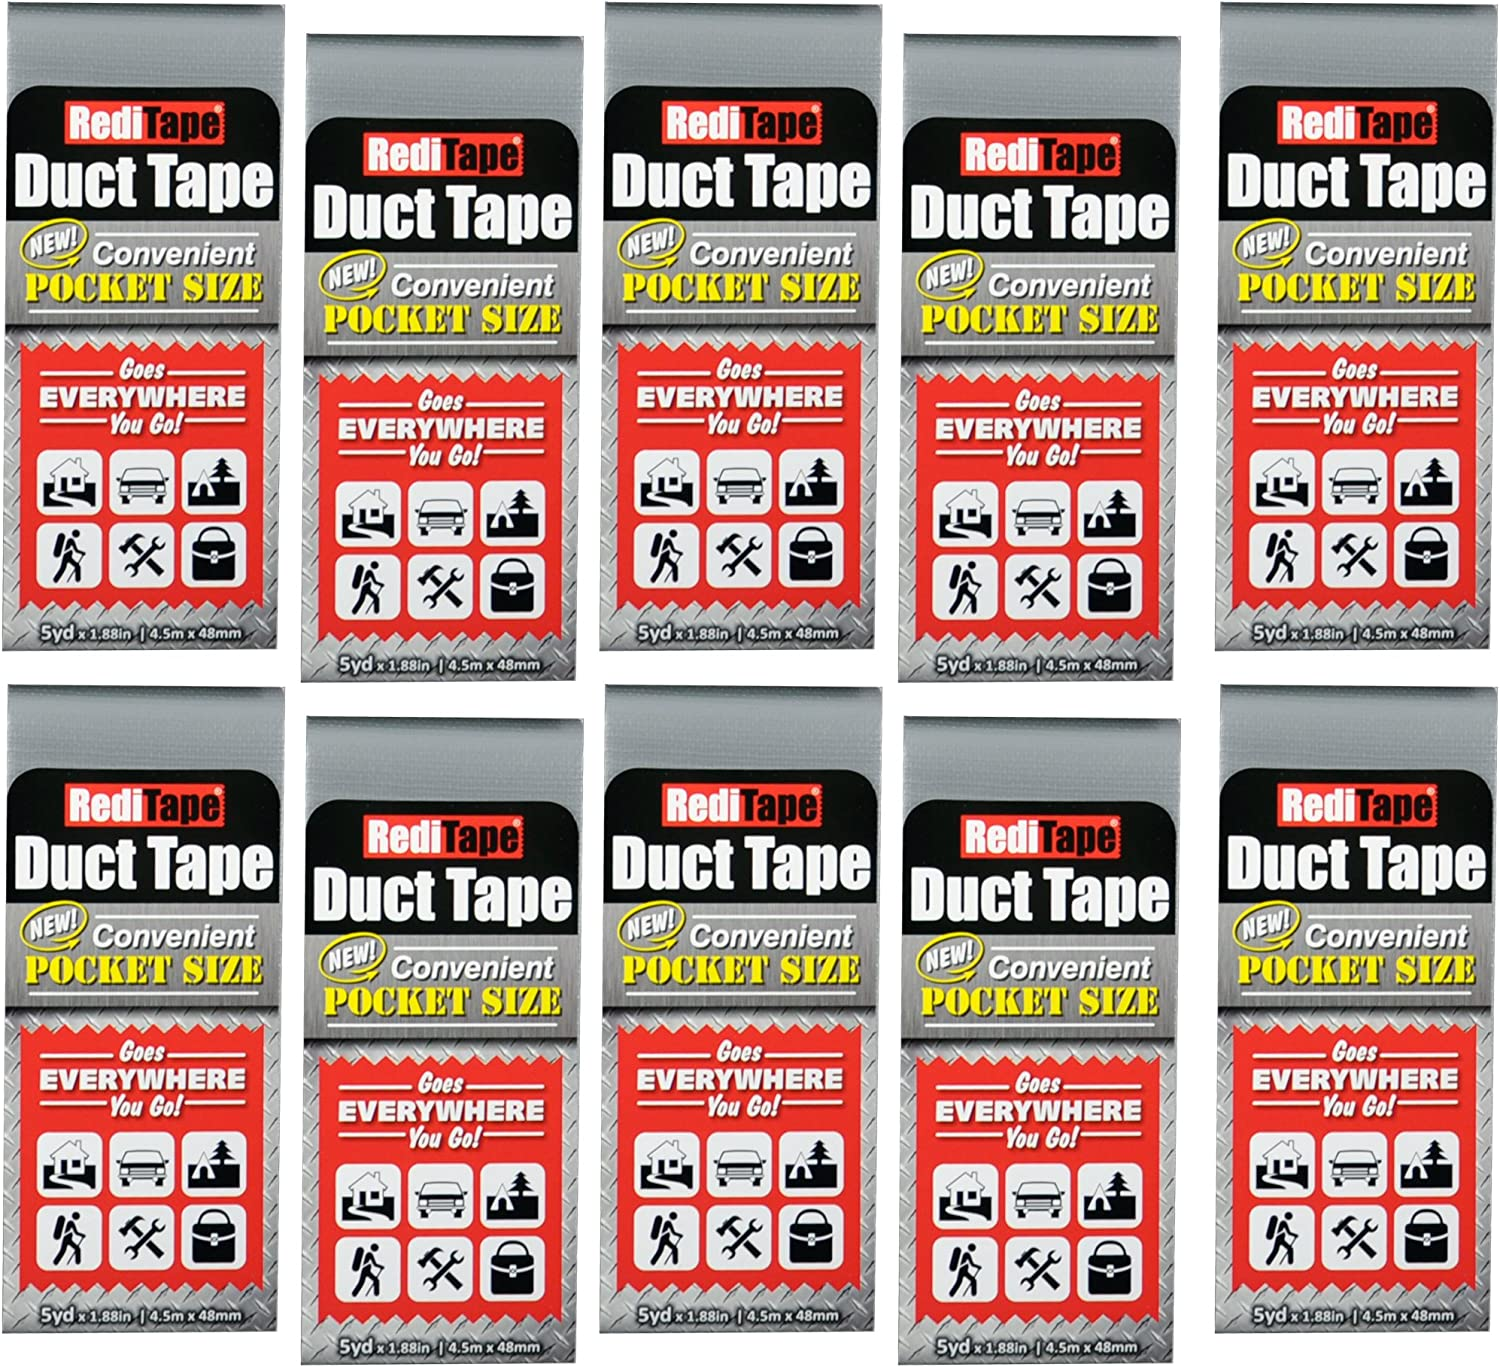 RediTape 10939 Compact Flat Fold Duct Tape for Travel, Camping, Photography and Emergencies | Pocket Size, 10-Pack, Silver, 10 Piece